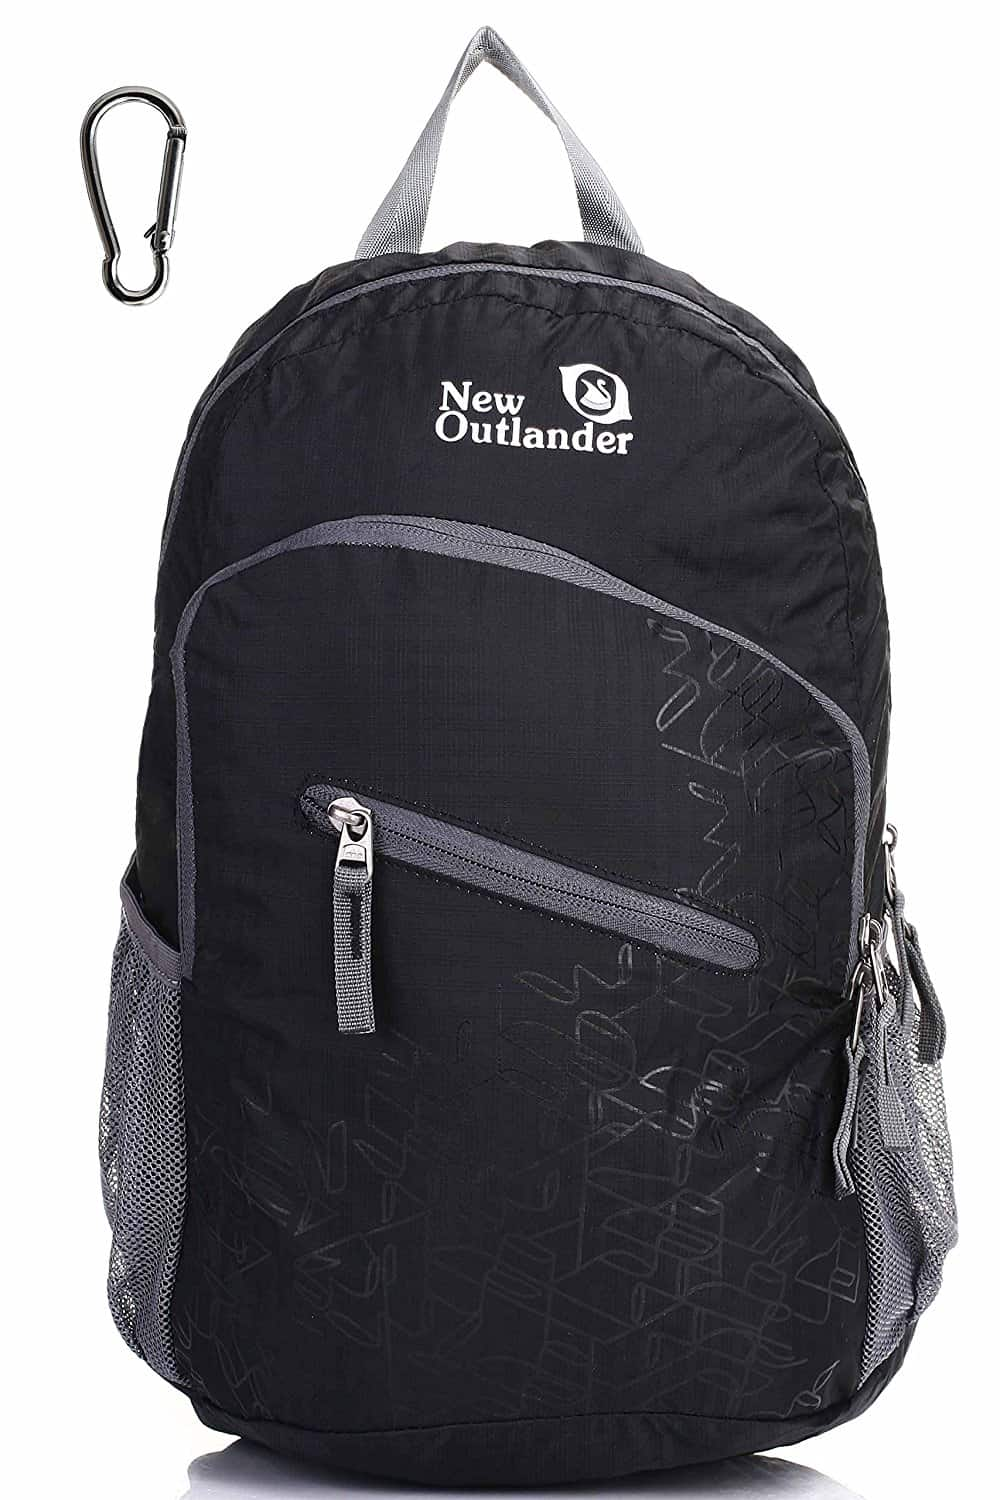 New Outlander 20L/33L Backpack Black